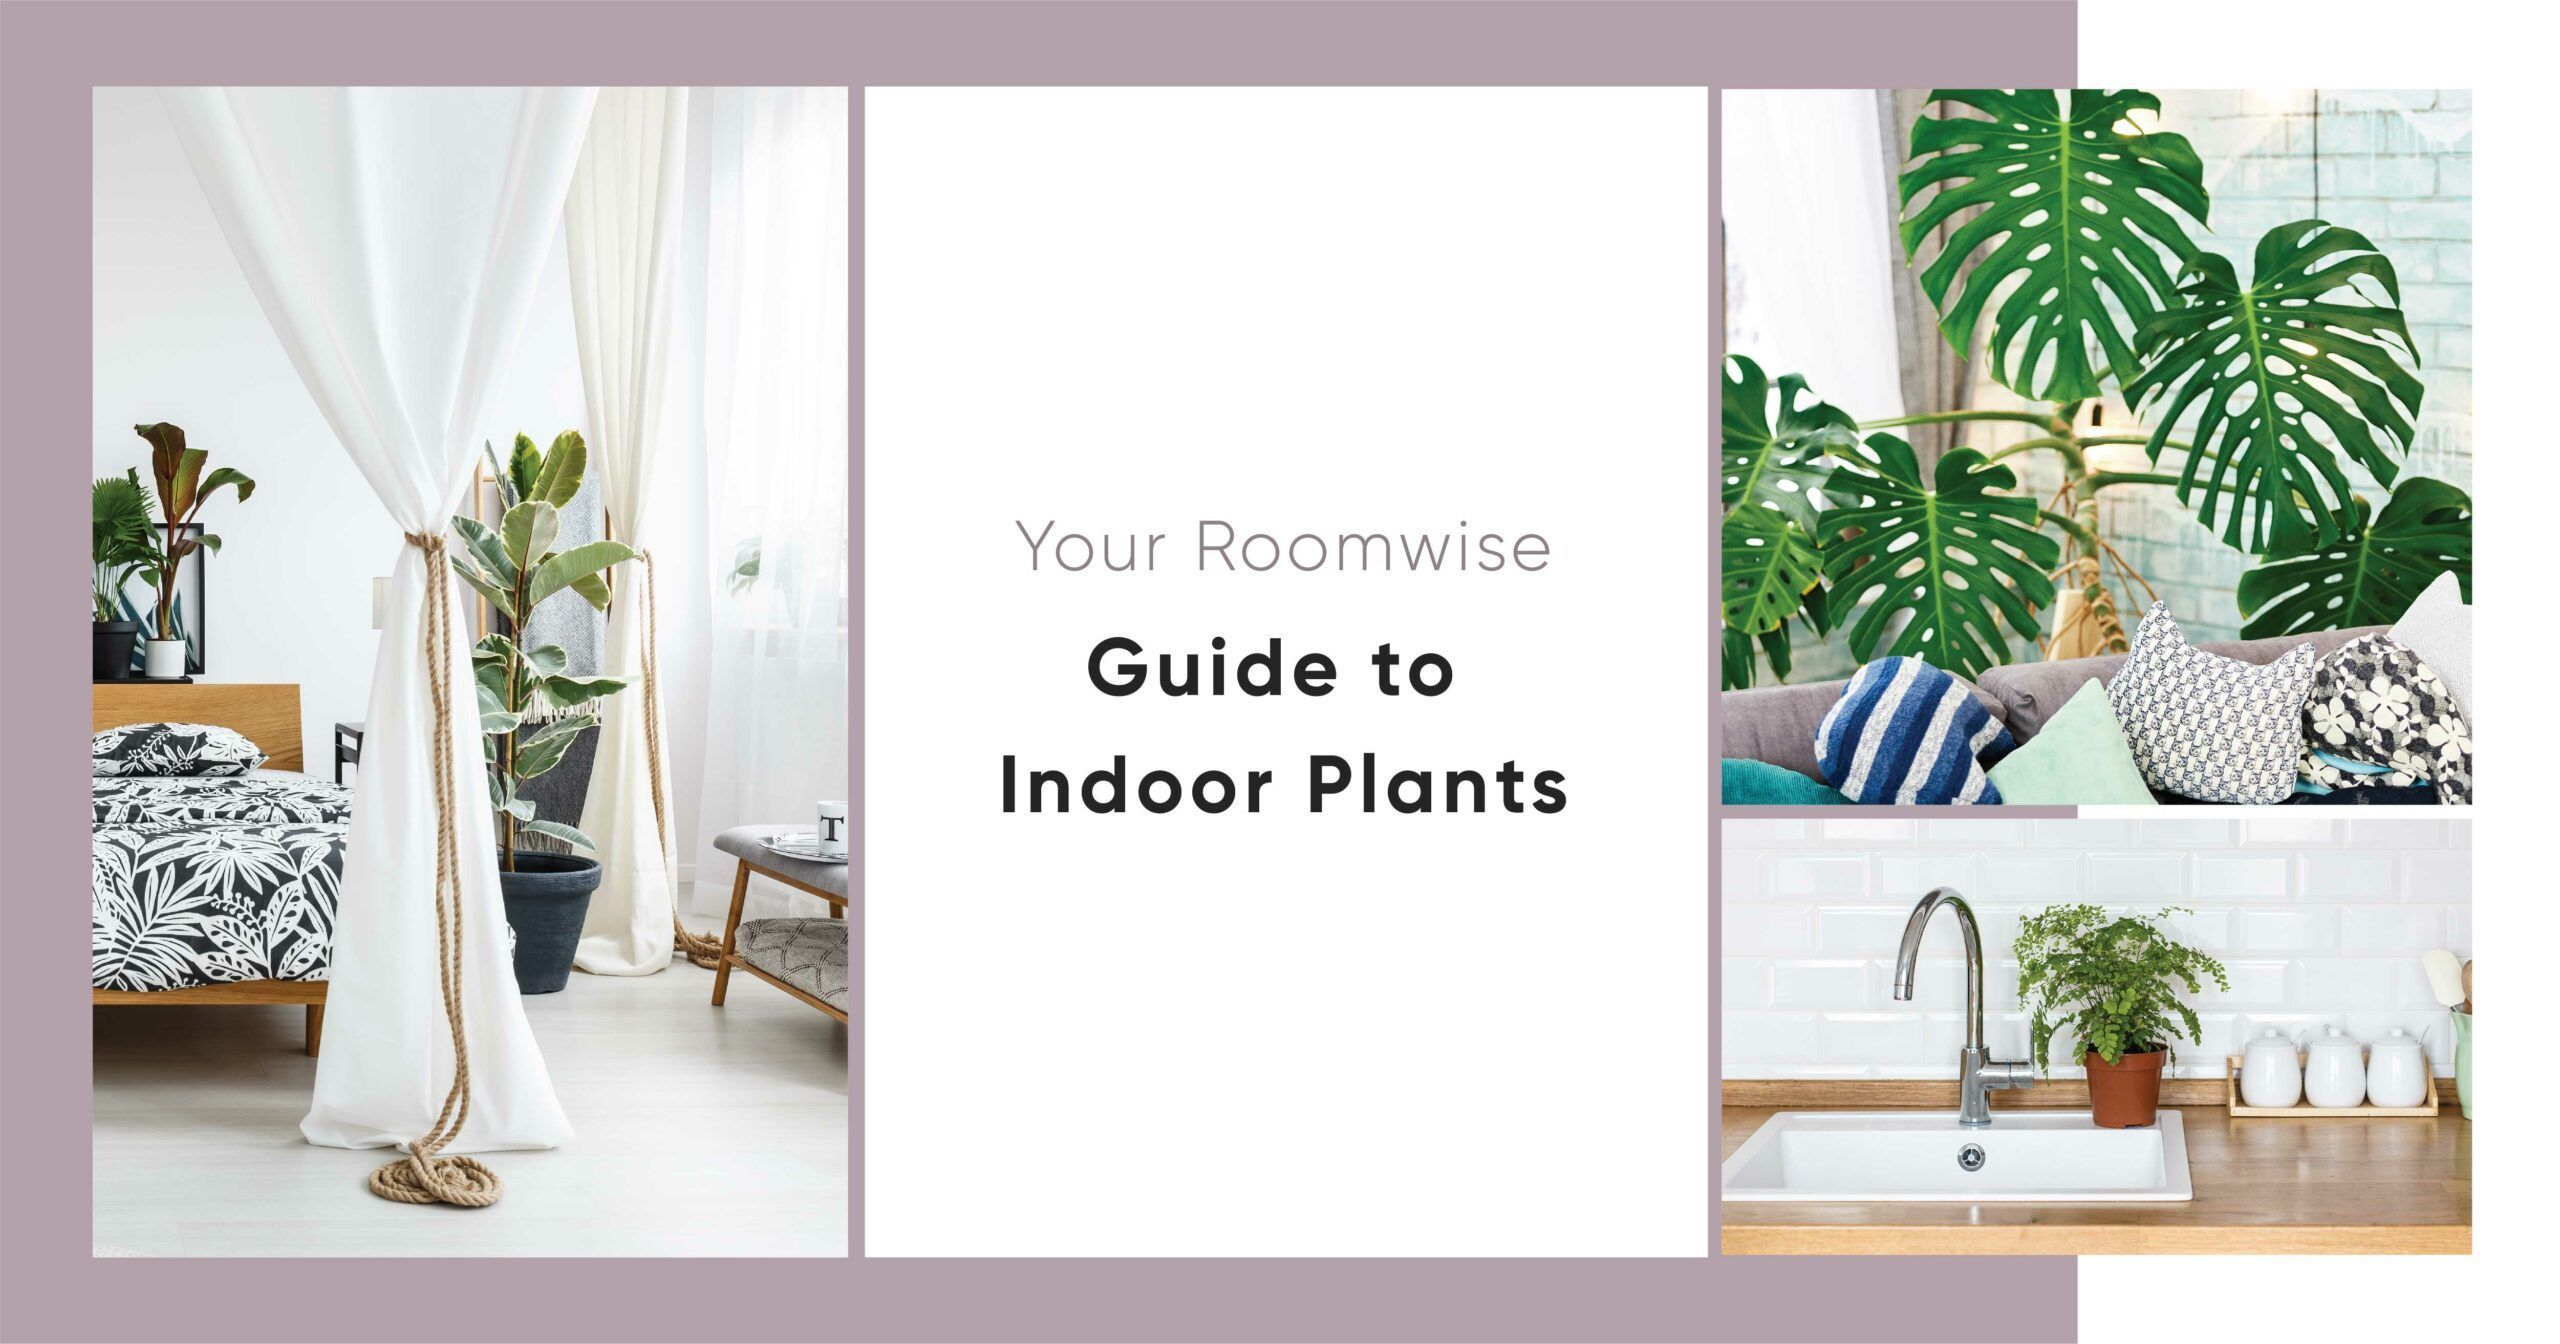 Why Do Some Plants Grow Better in Certain Rooms?